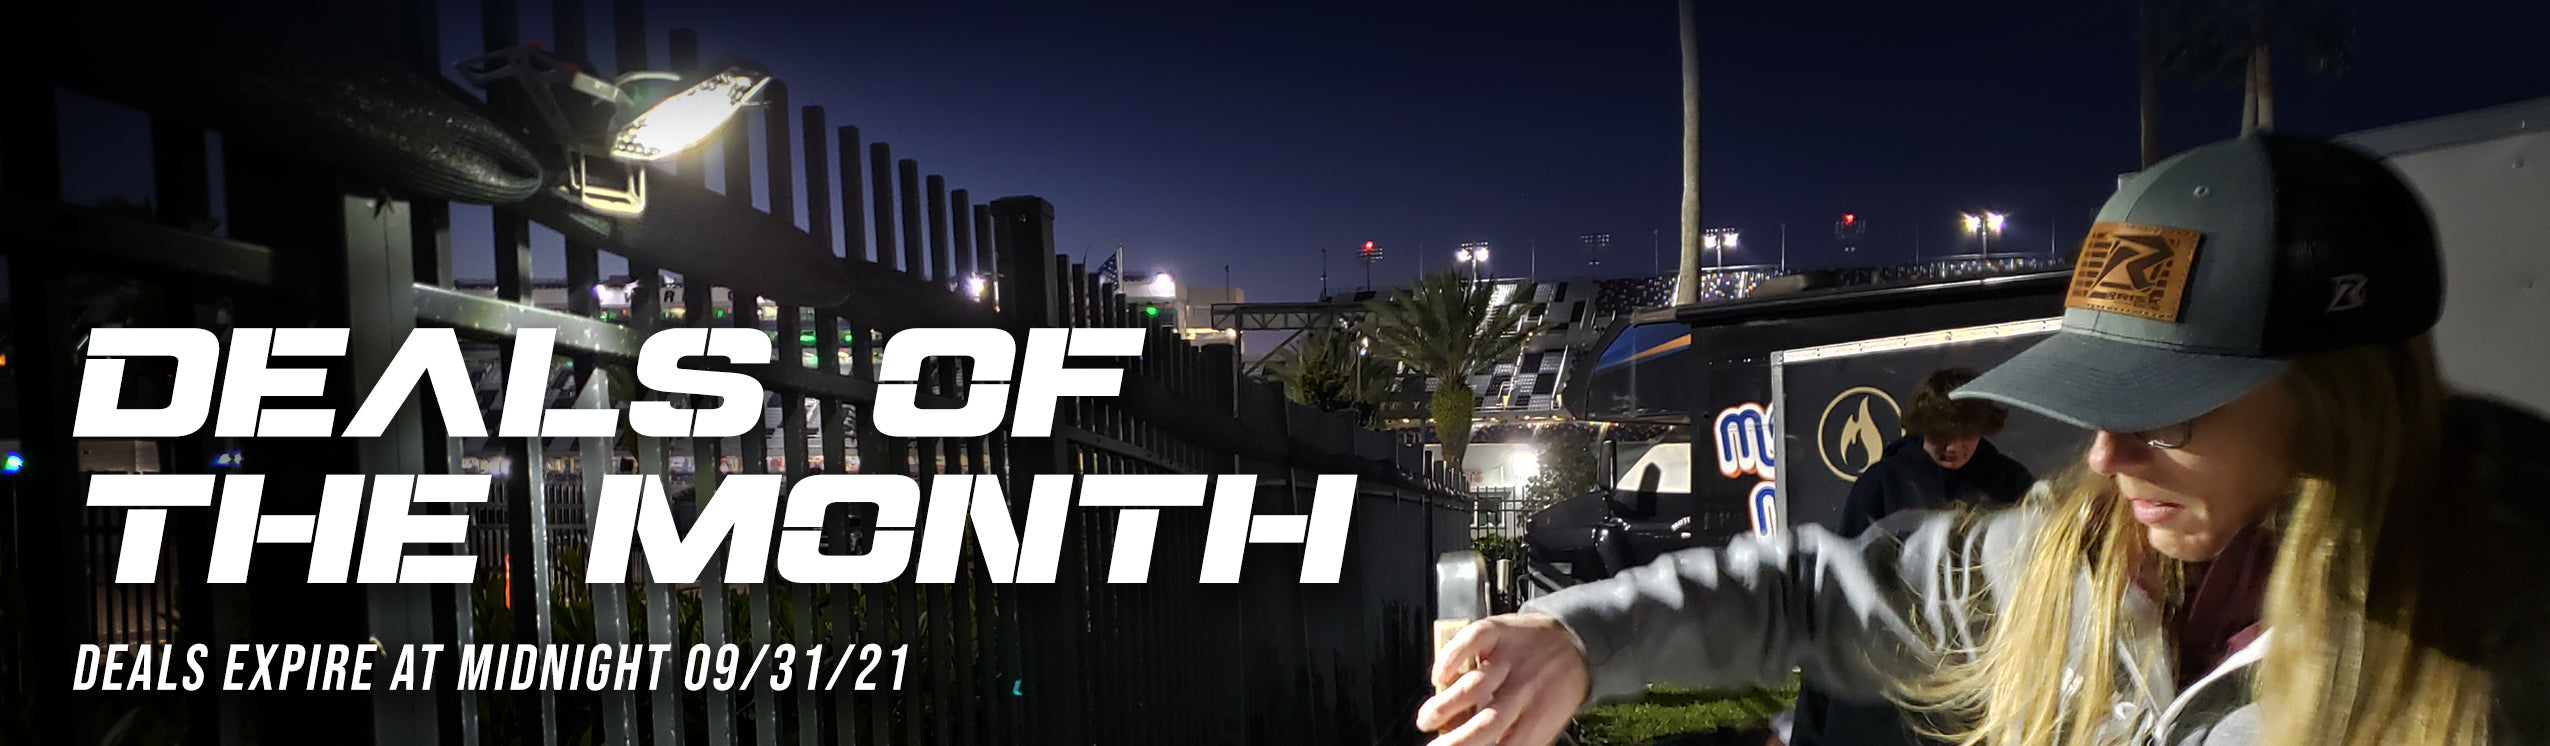 Deals of the Month Banner